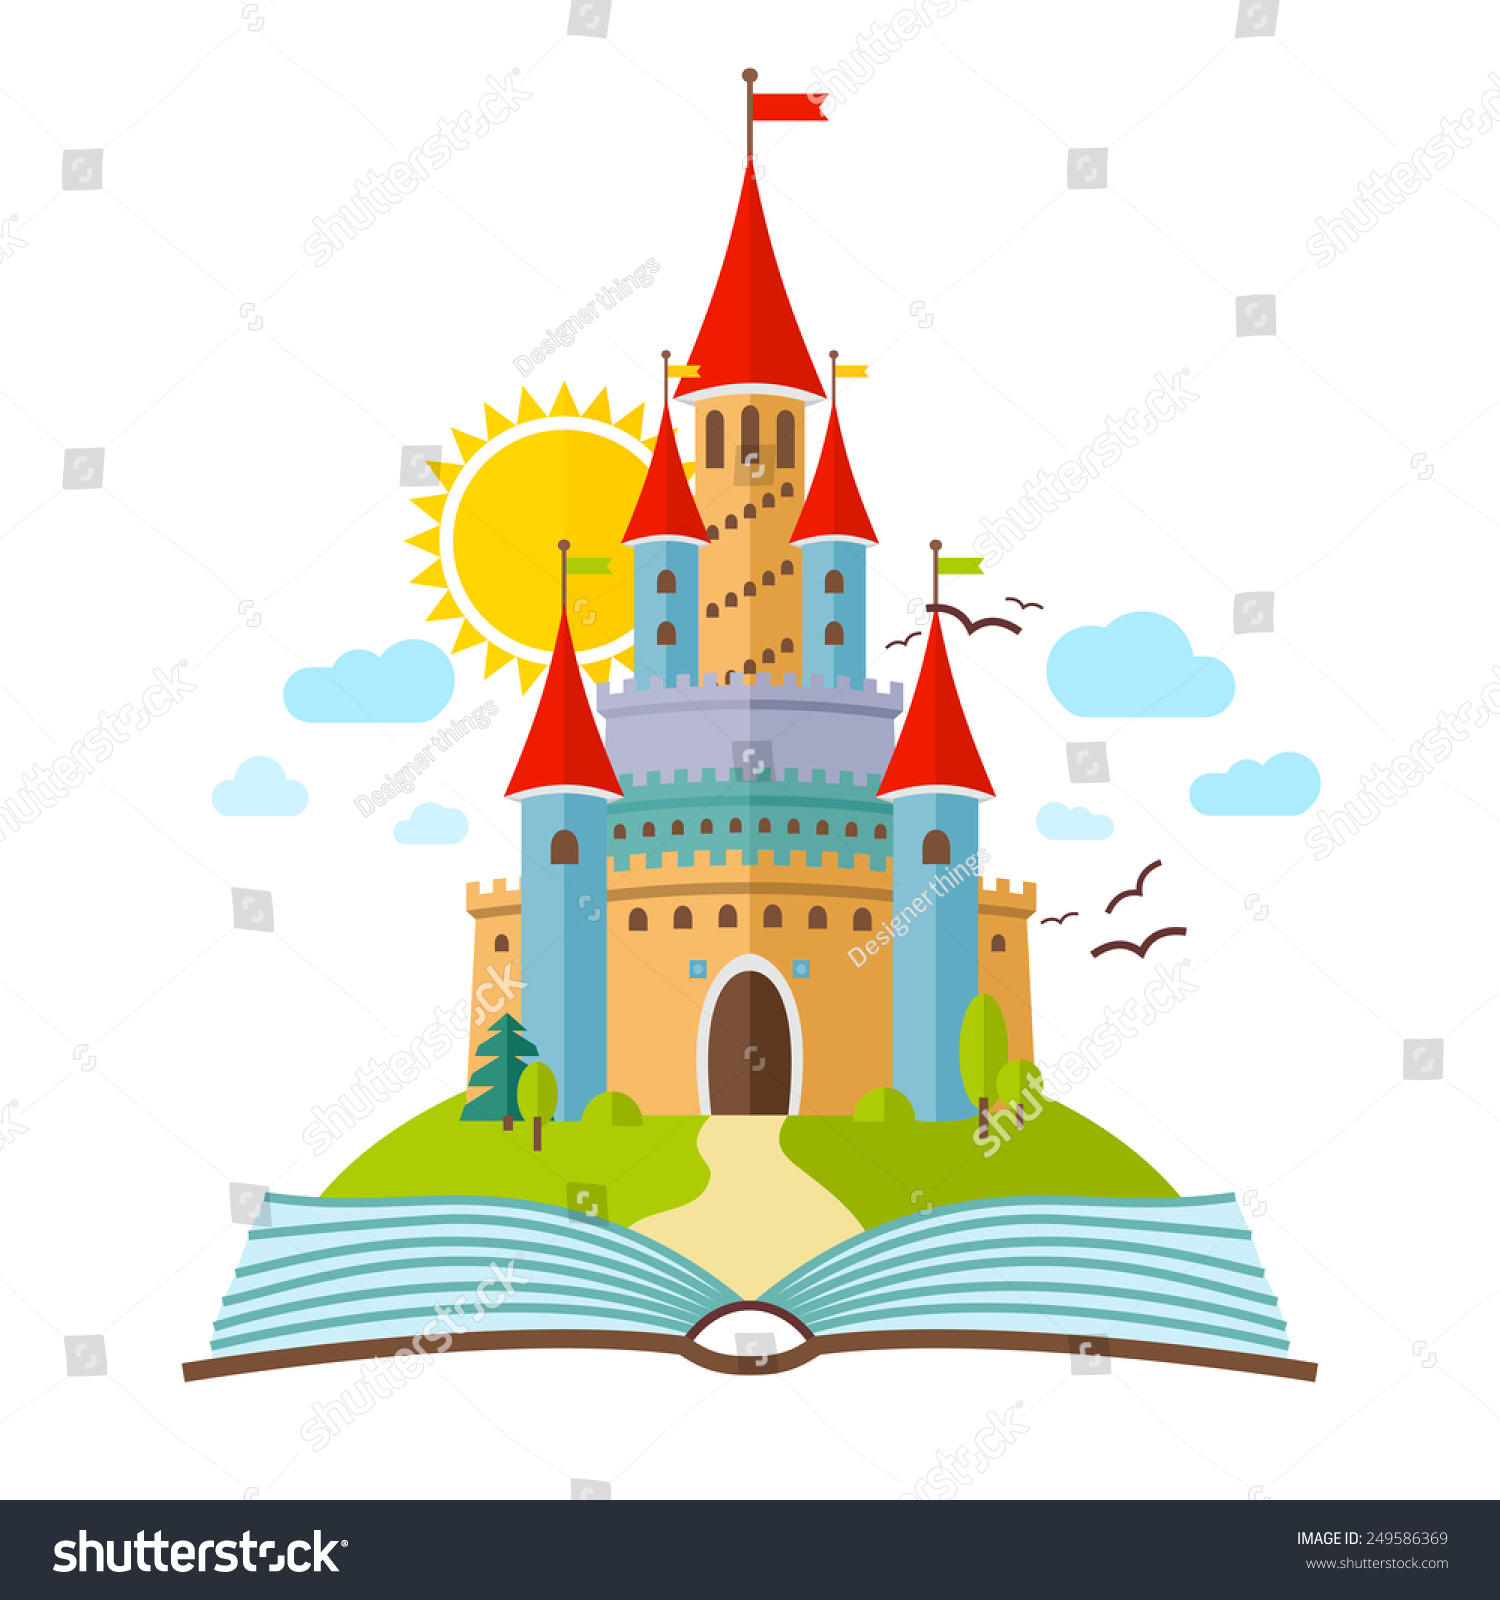 Fairytale Castle Vector Flat Child Illustration Stock Vector ...